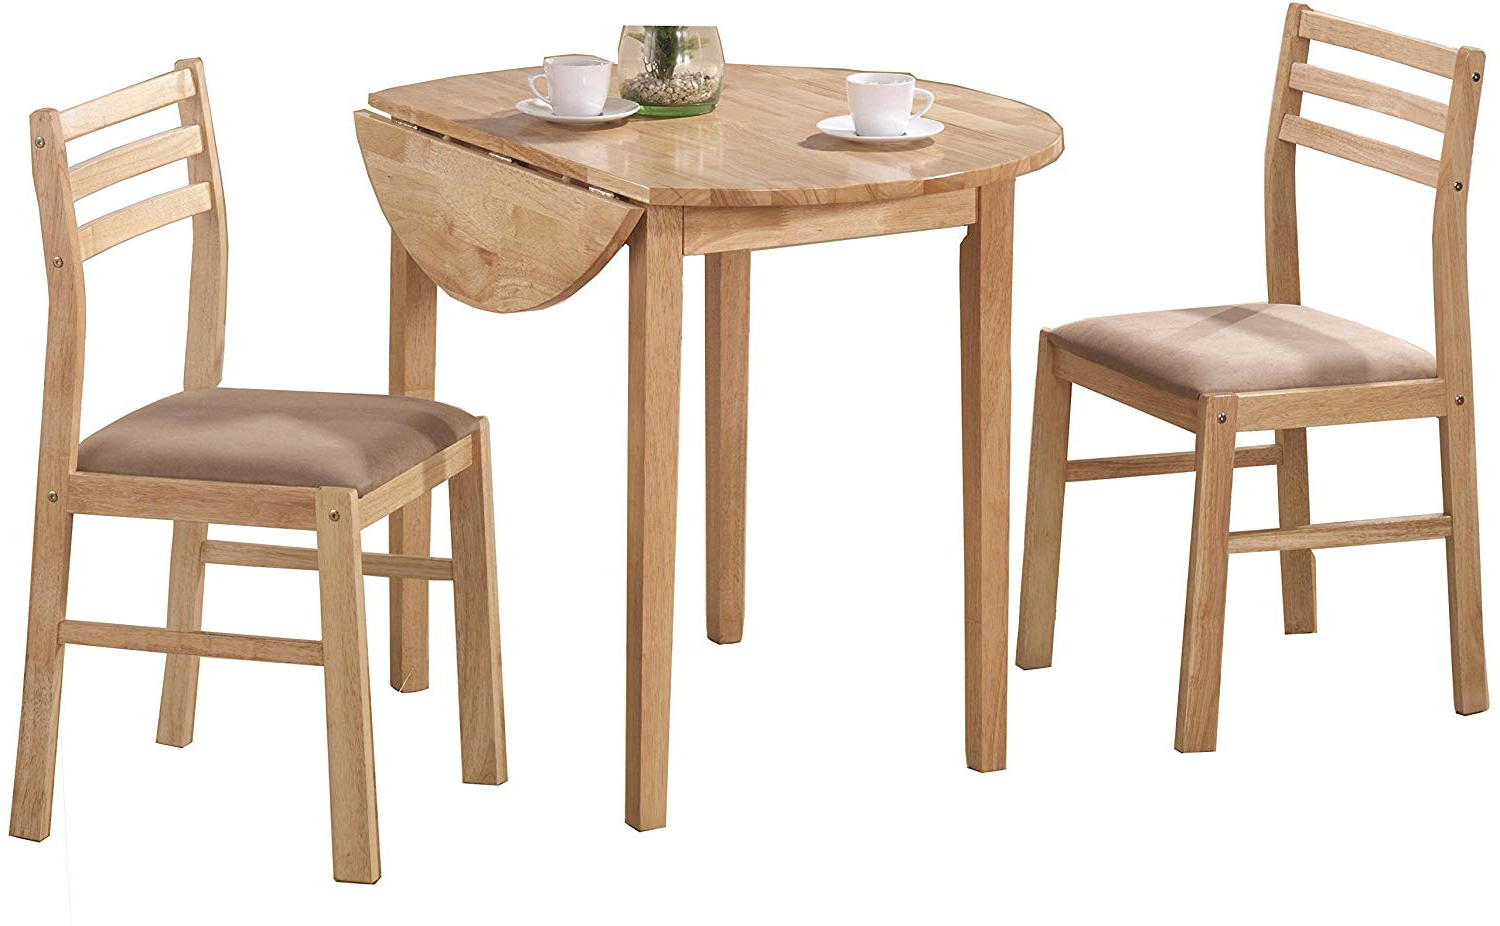 Newest Amazon – 3 Piece Dining Set With Drop Leaf Beige And Natural Intended For Baillie 3 Piece Dining Sets (View 5 of 25)